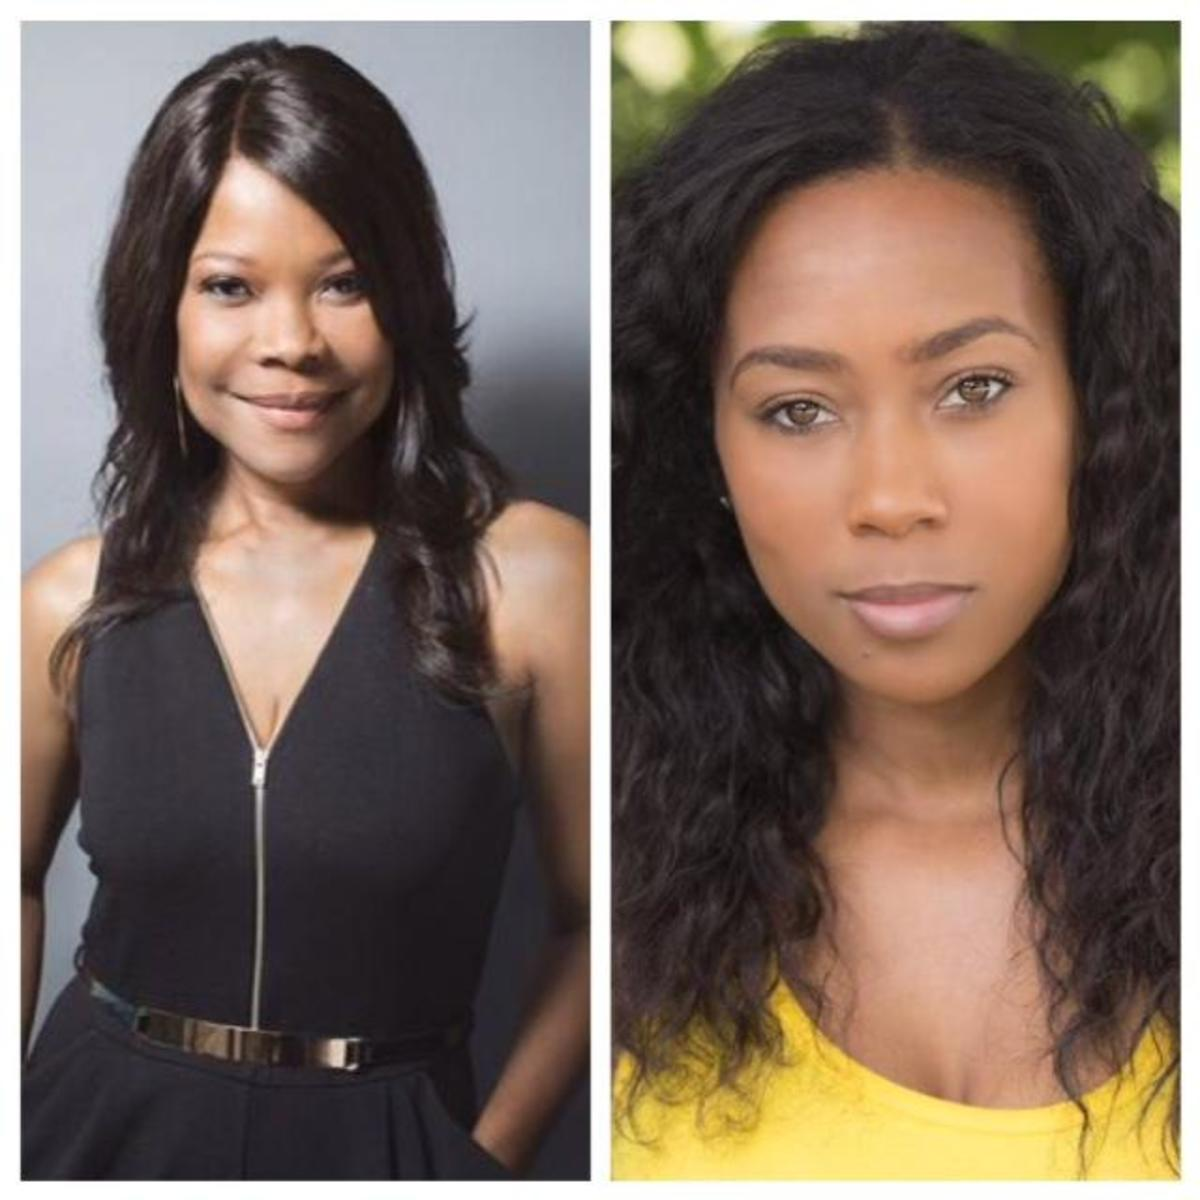 'The Haves and the Have Nots': Veronica Hires a Maid to Be Her Body Double